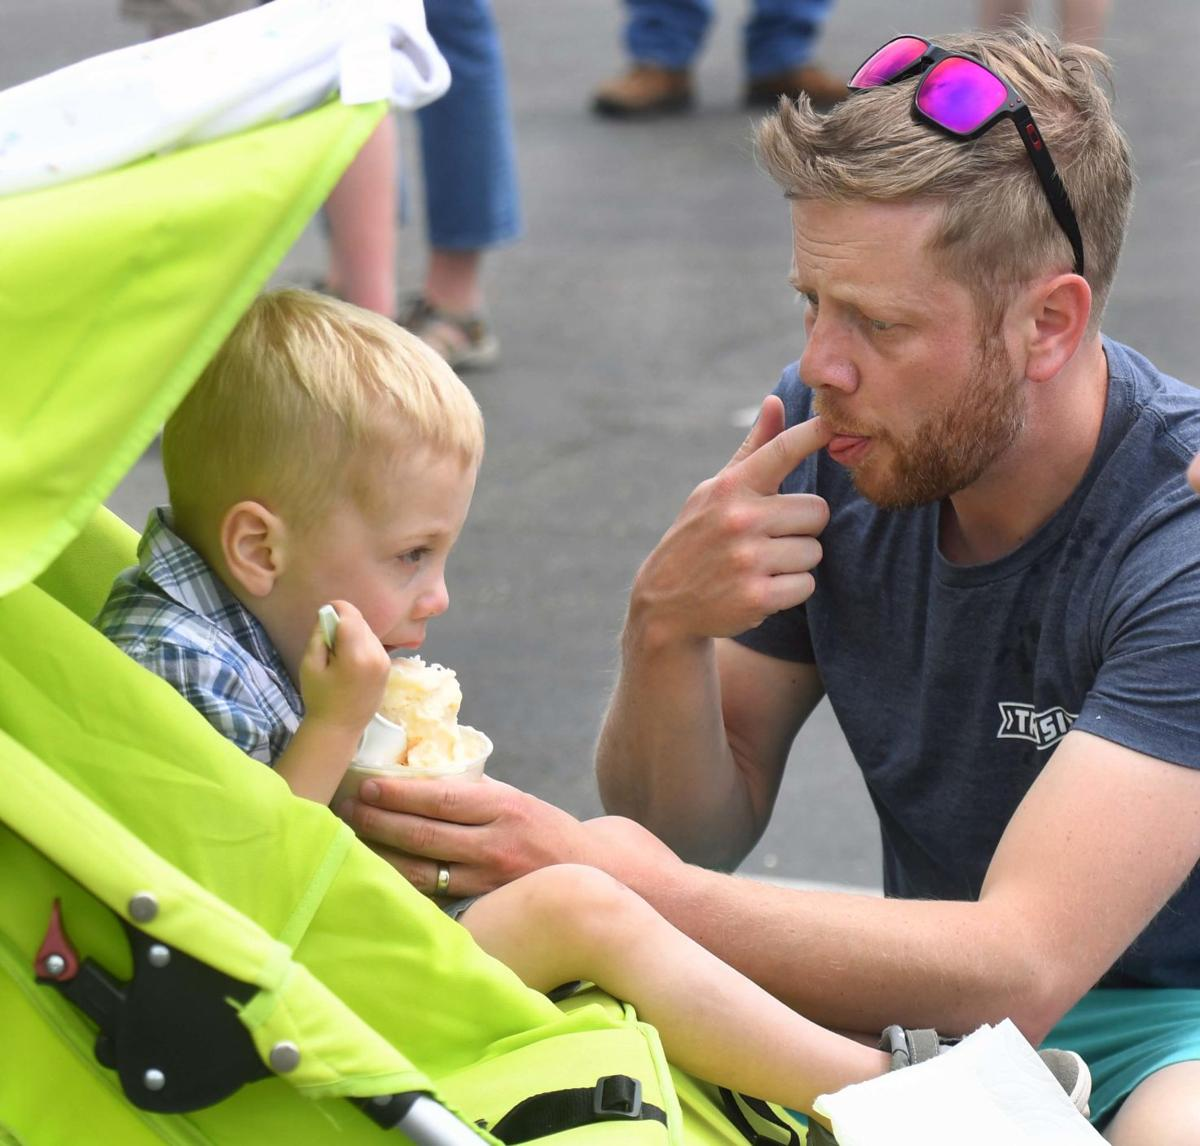 Colorado Springs food trucks compete for bragging rights at 4th annual Food Truck Cook-Off